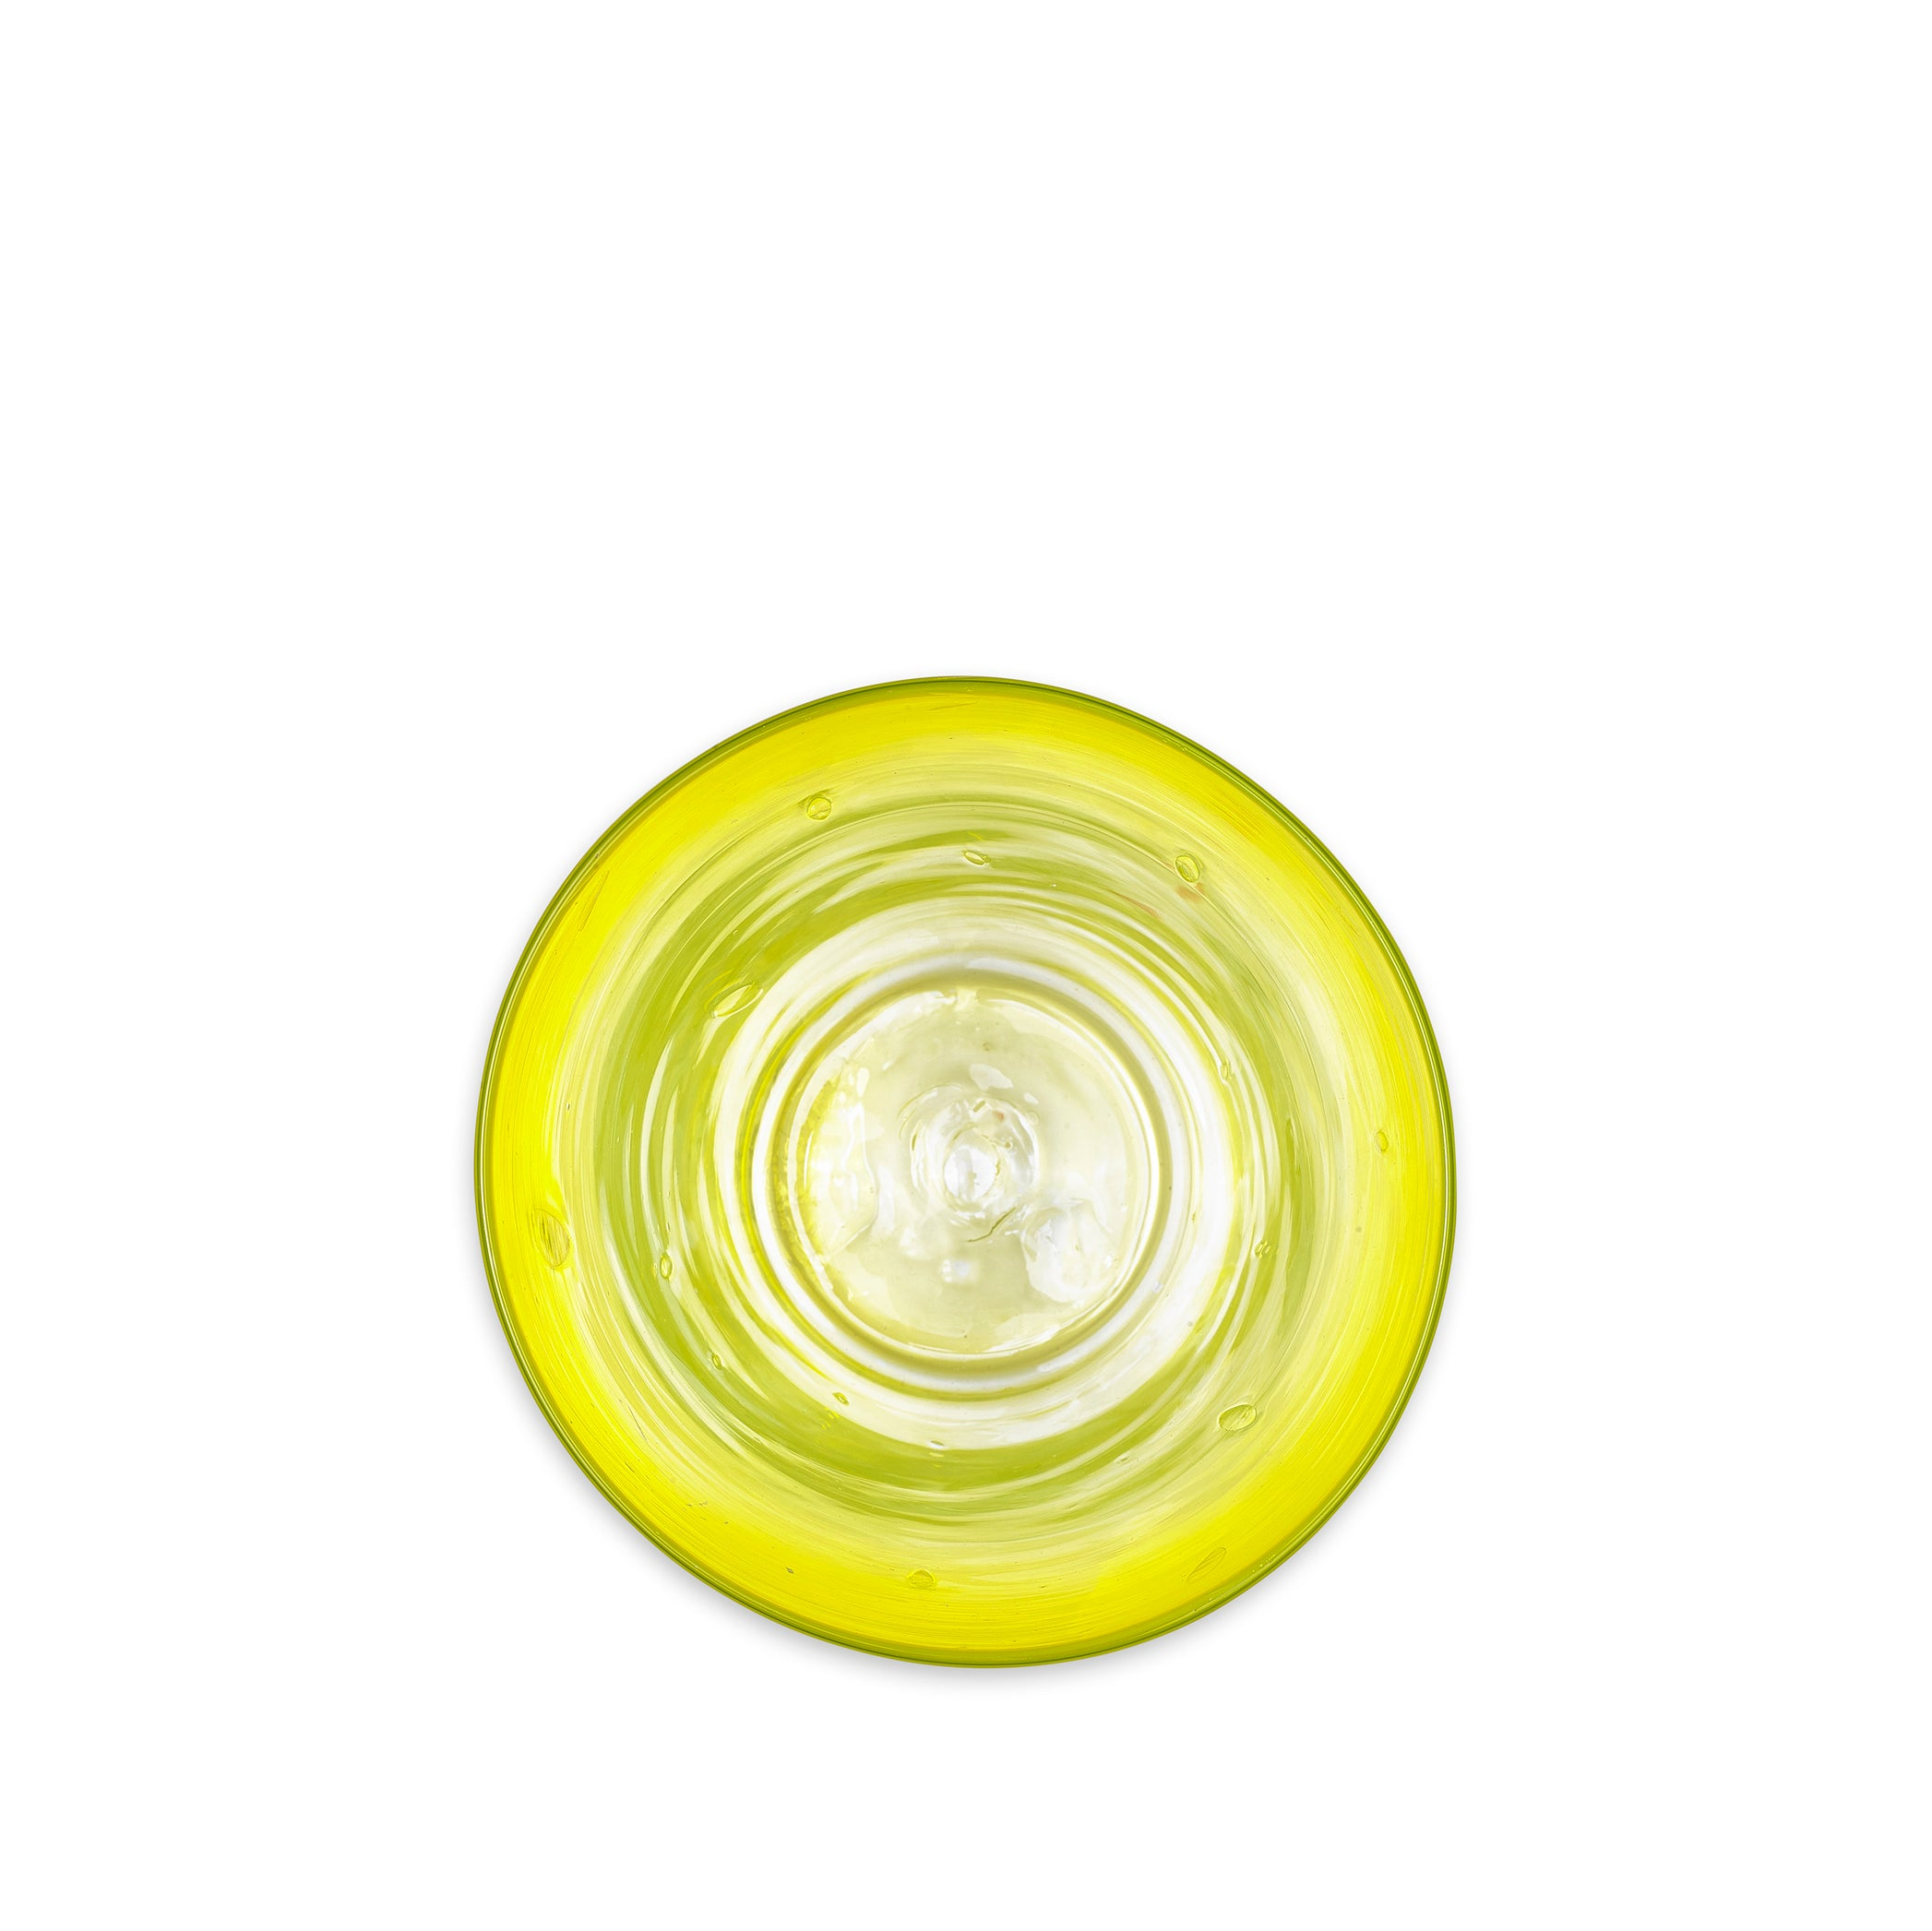 Handblown Glass Vase in Lemon Yellow